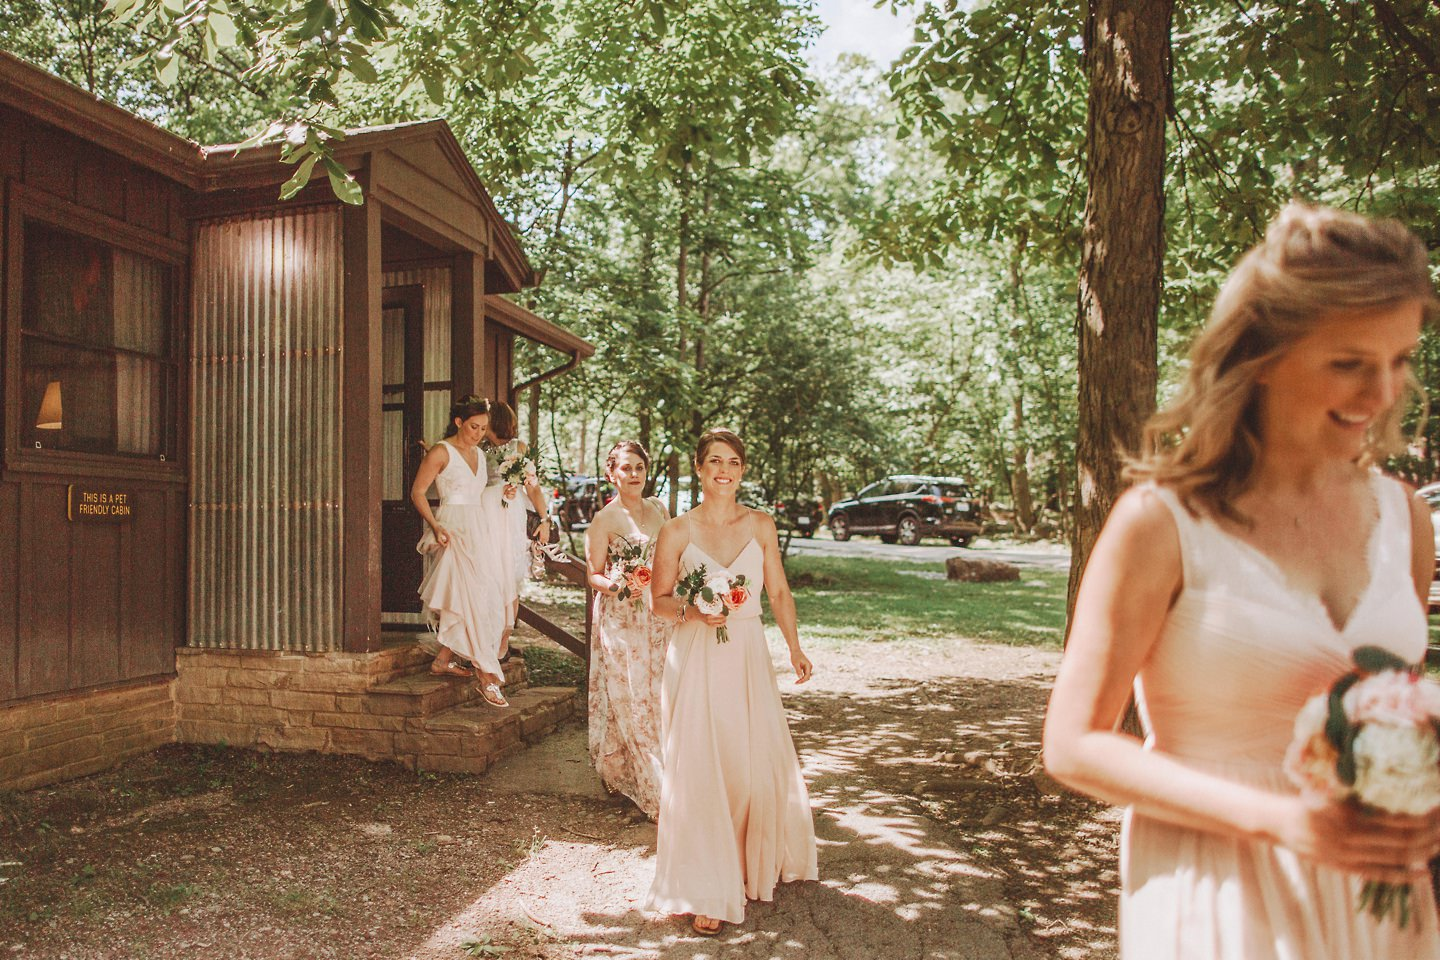 camp wedding at Cacapon Resort State Park